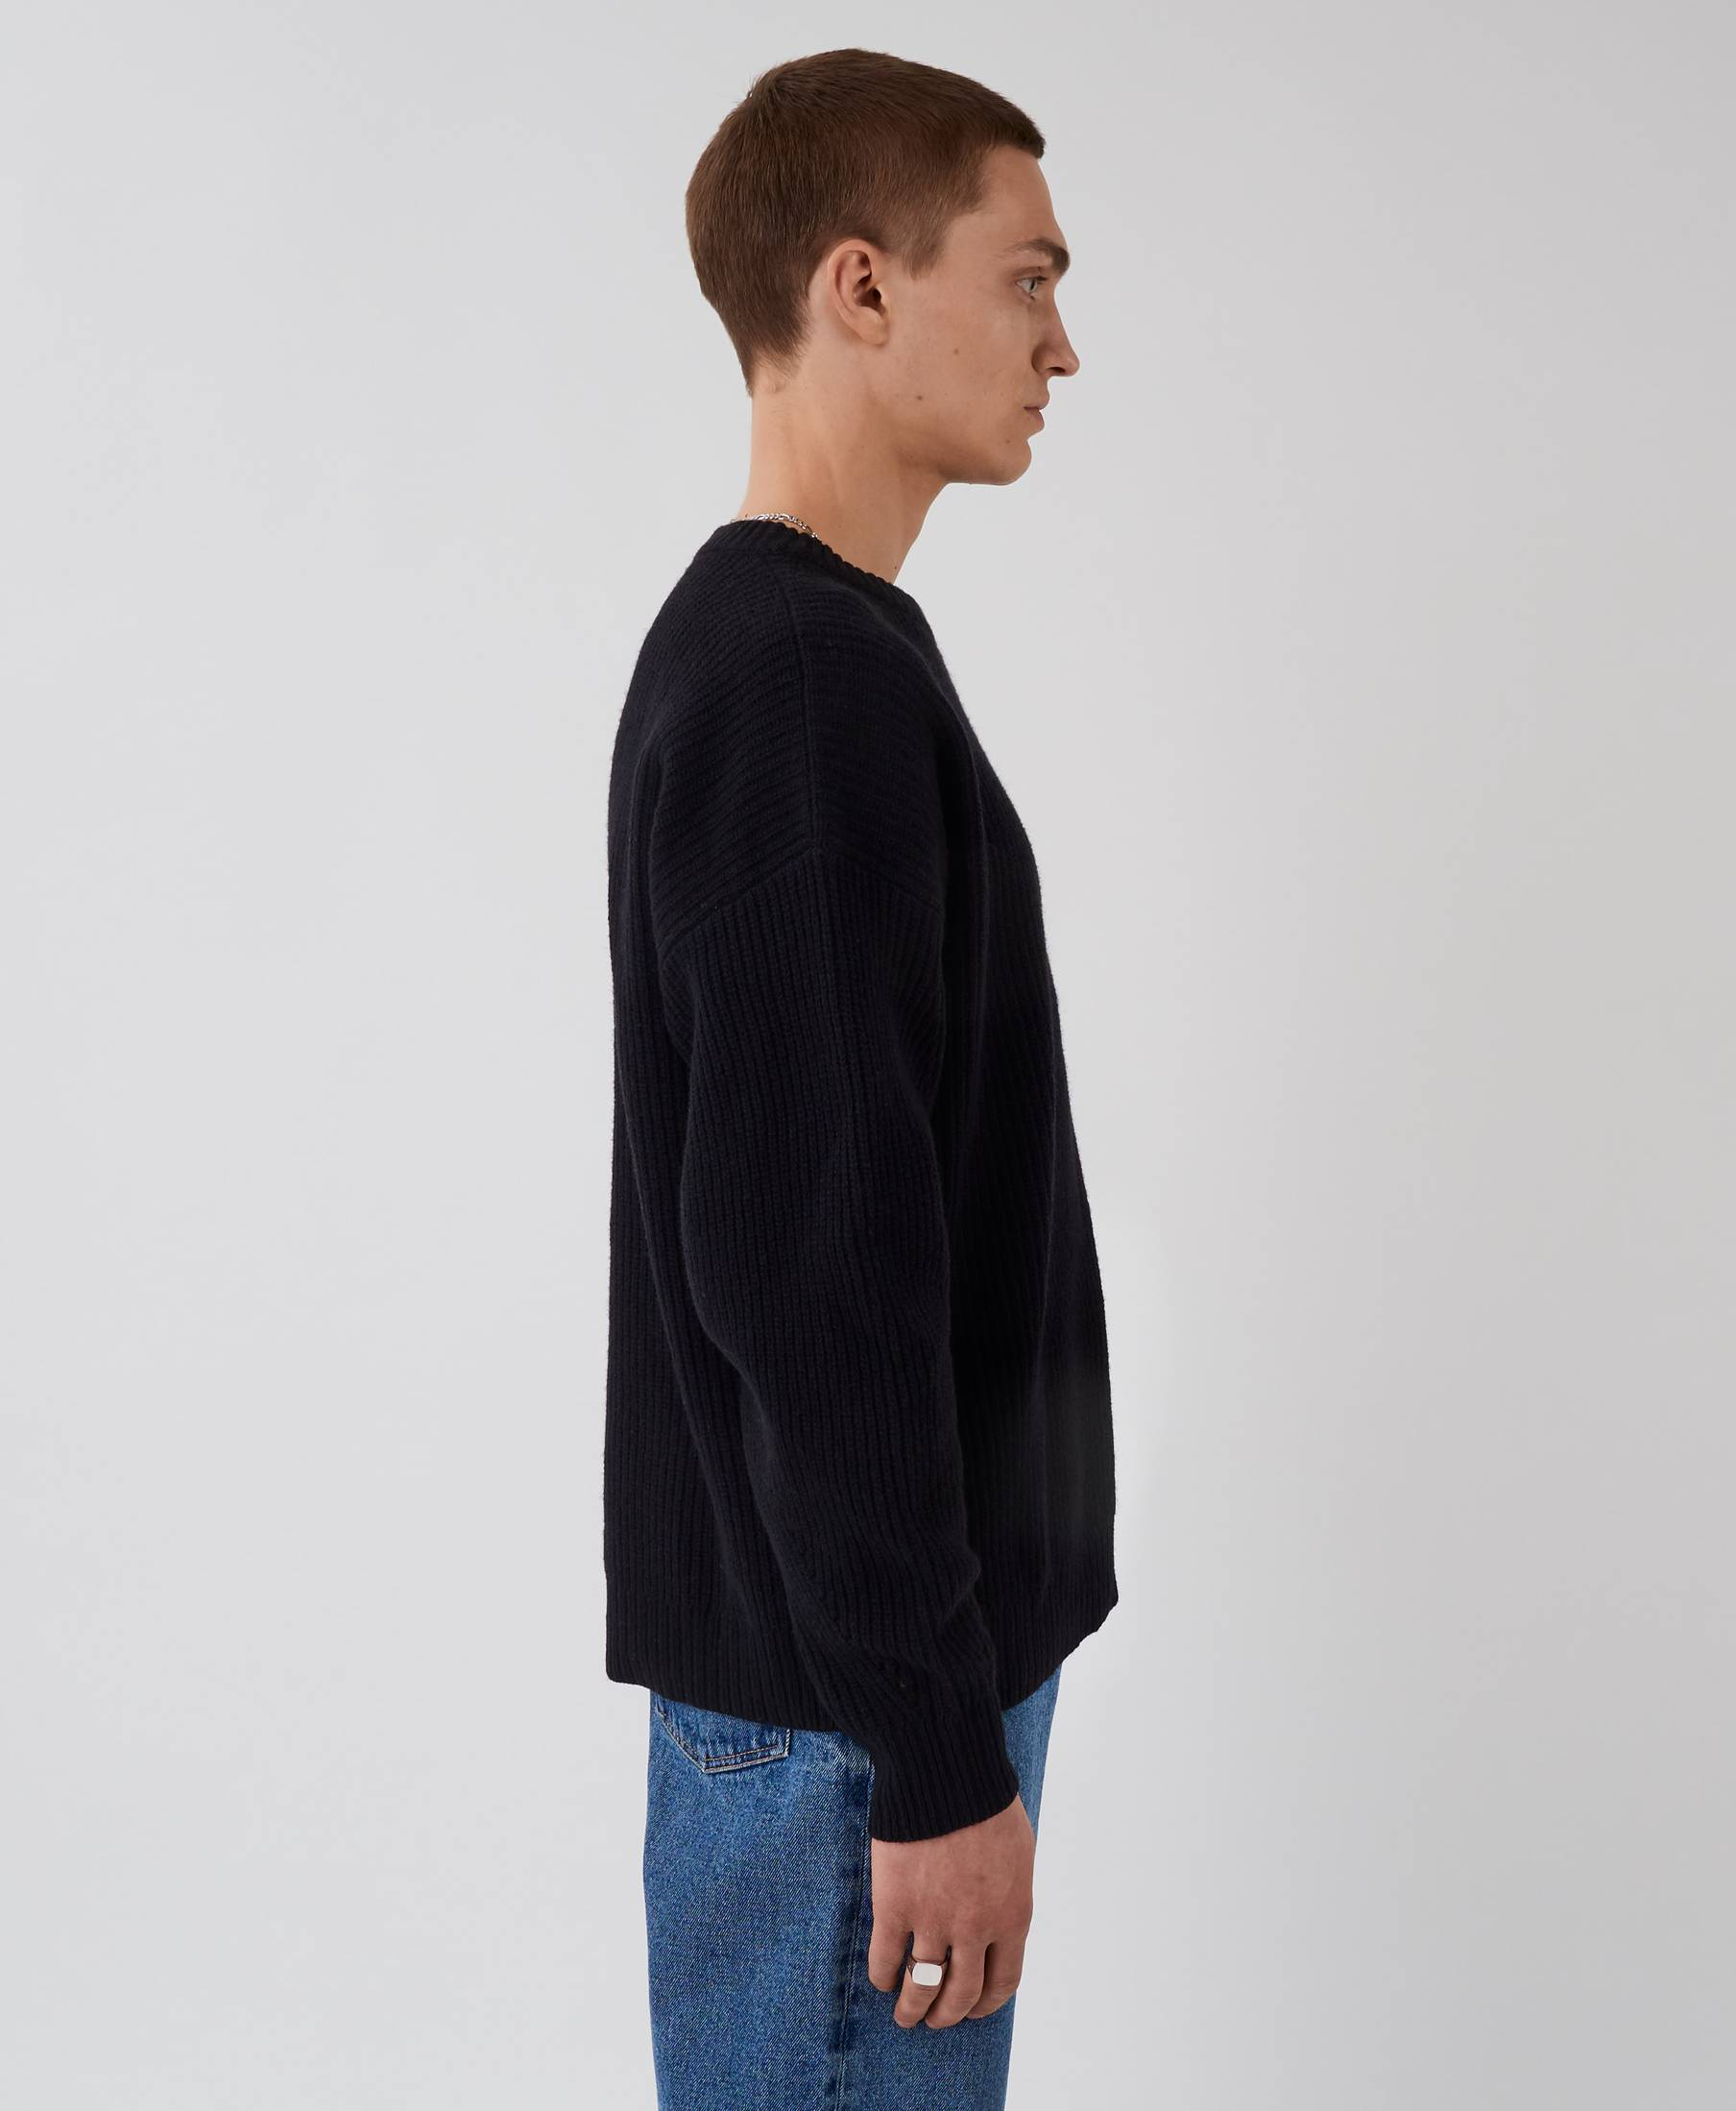 Kelvin Sweater Pistol Black